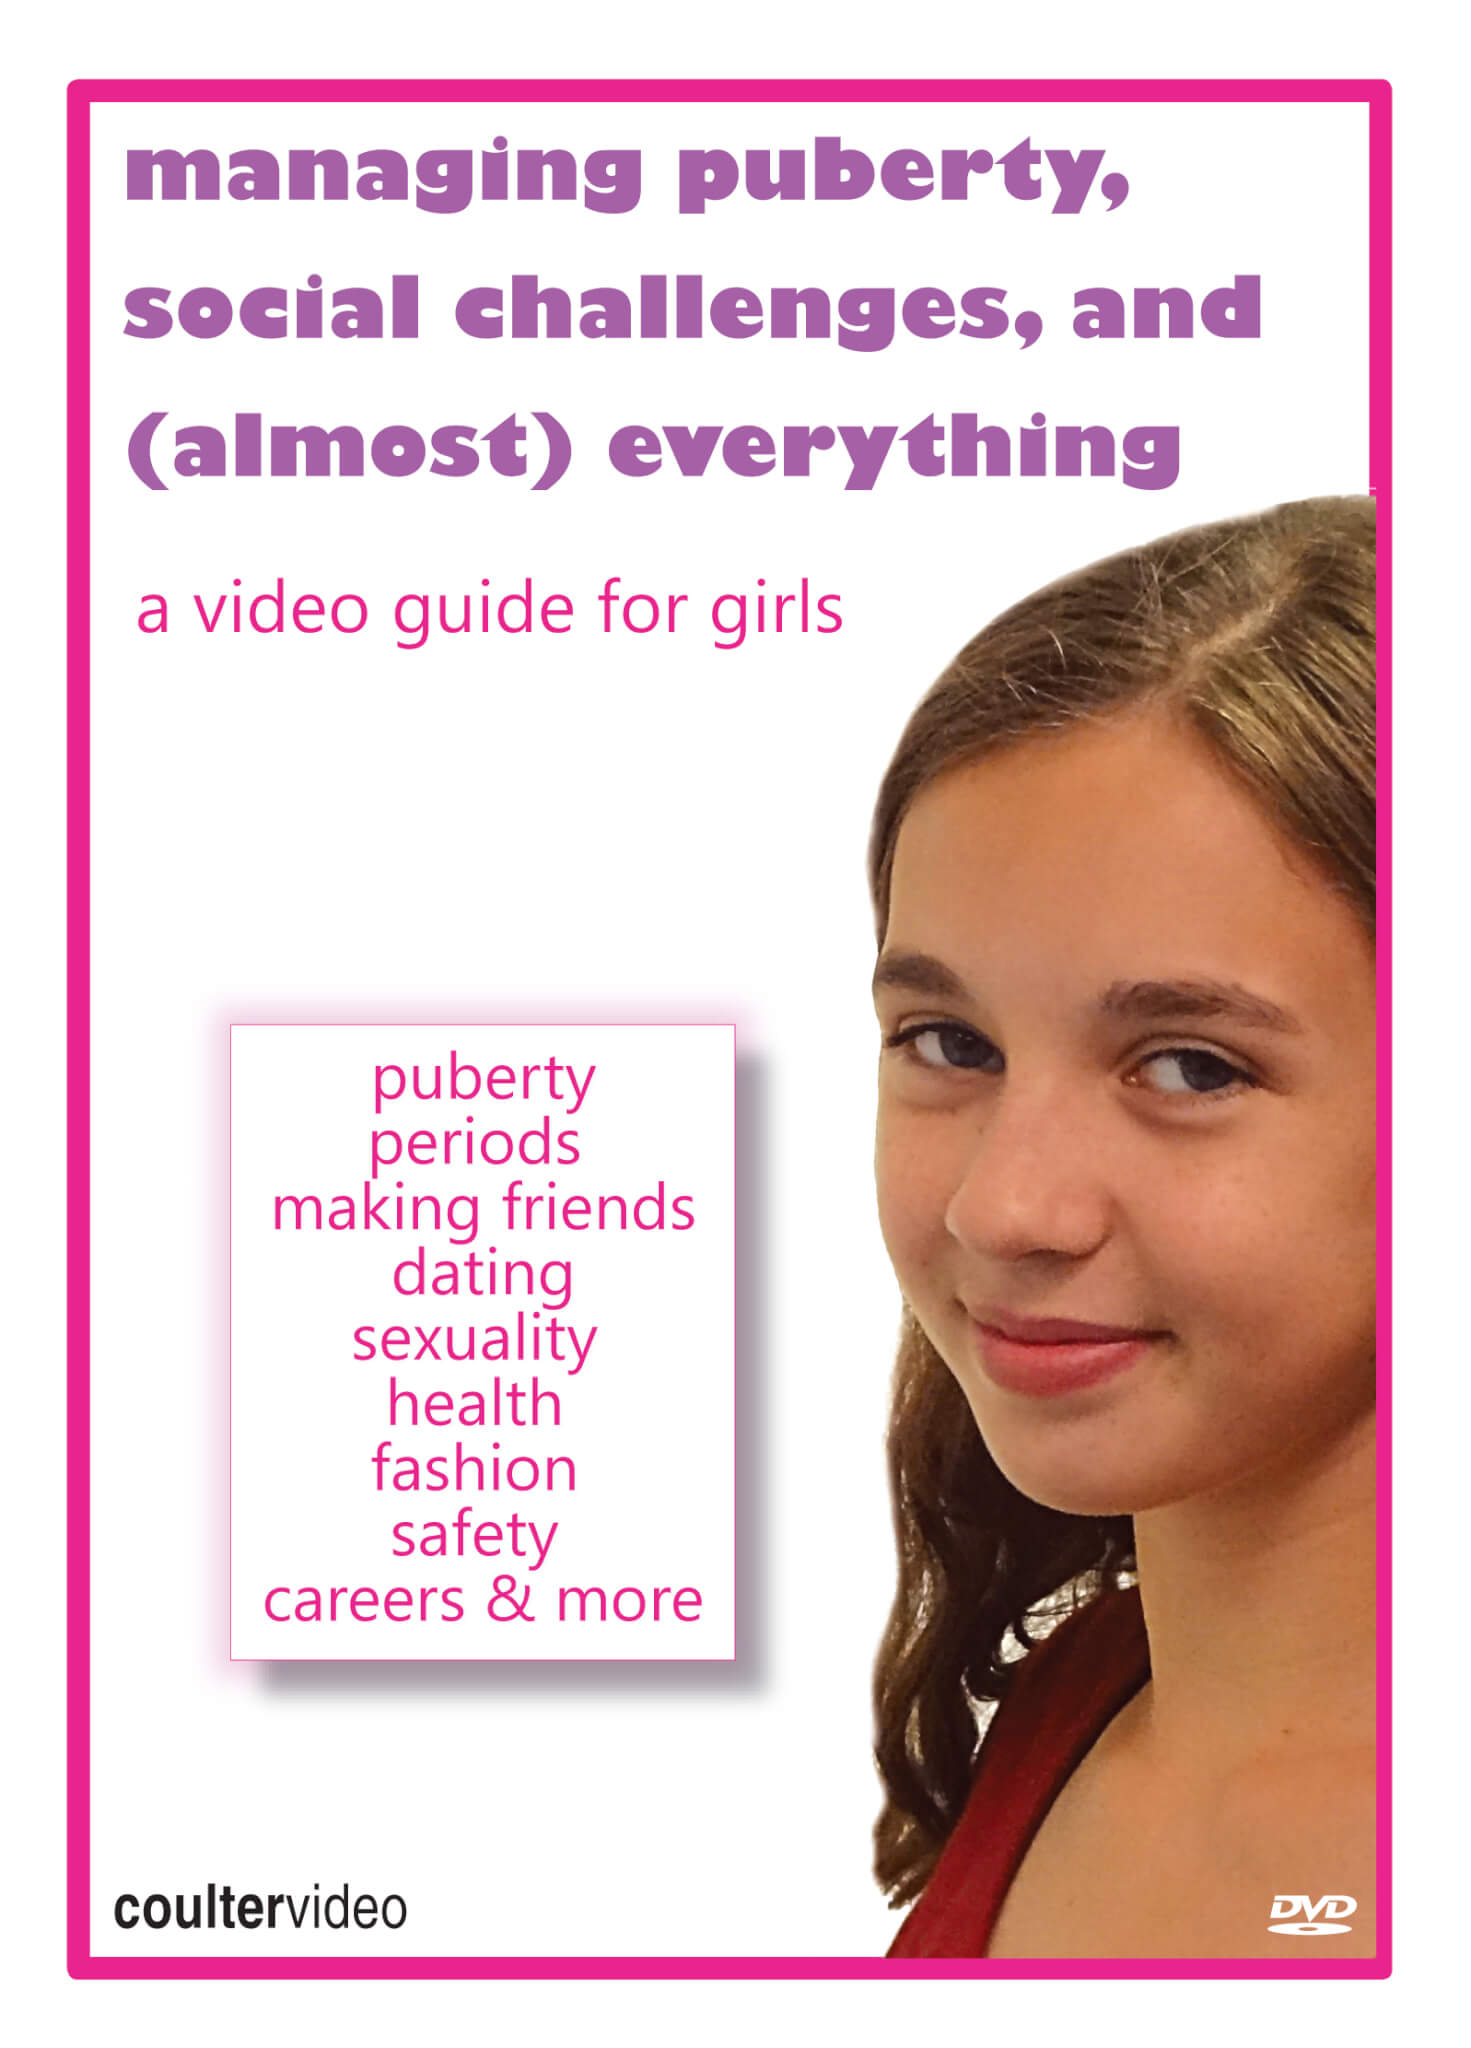 Managing Puberty, Social Challenges, And (Almost) Everything: A Video Guide for Girls